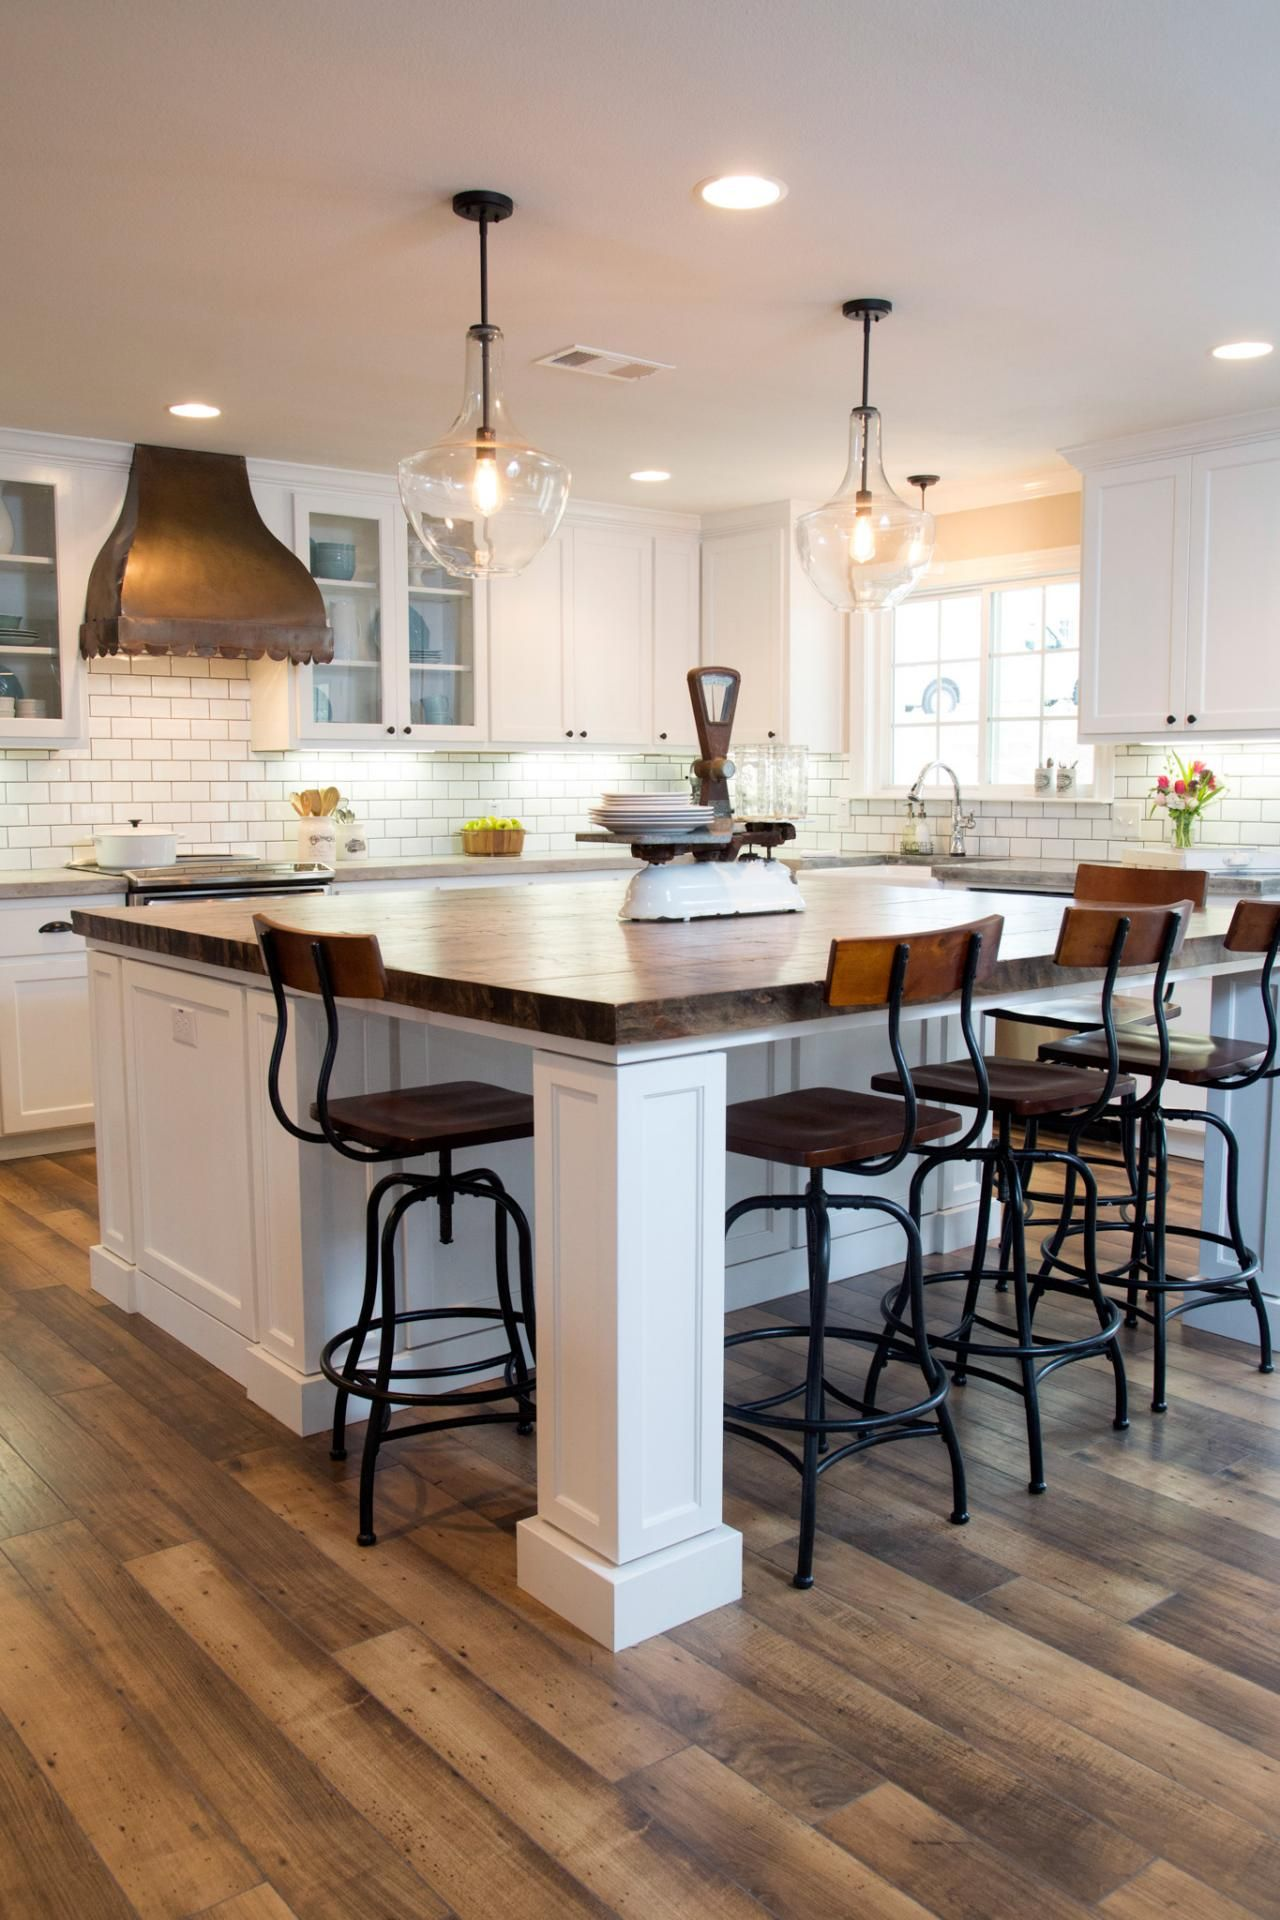 Farmhouse kitchen island lighting - Life Is Just A Tire Swing A Woodway Texas Fixer Upper Kitchen Island Stoolsfarmhouse